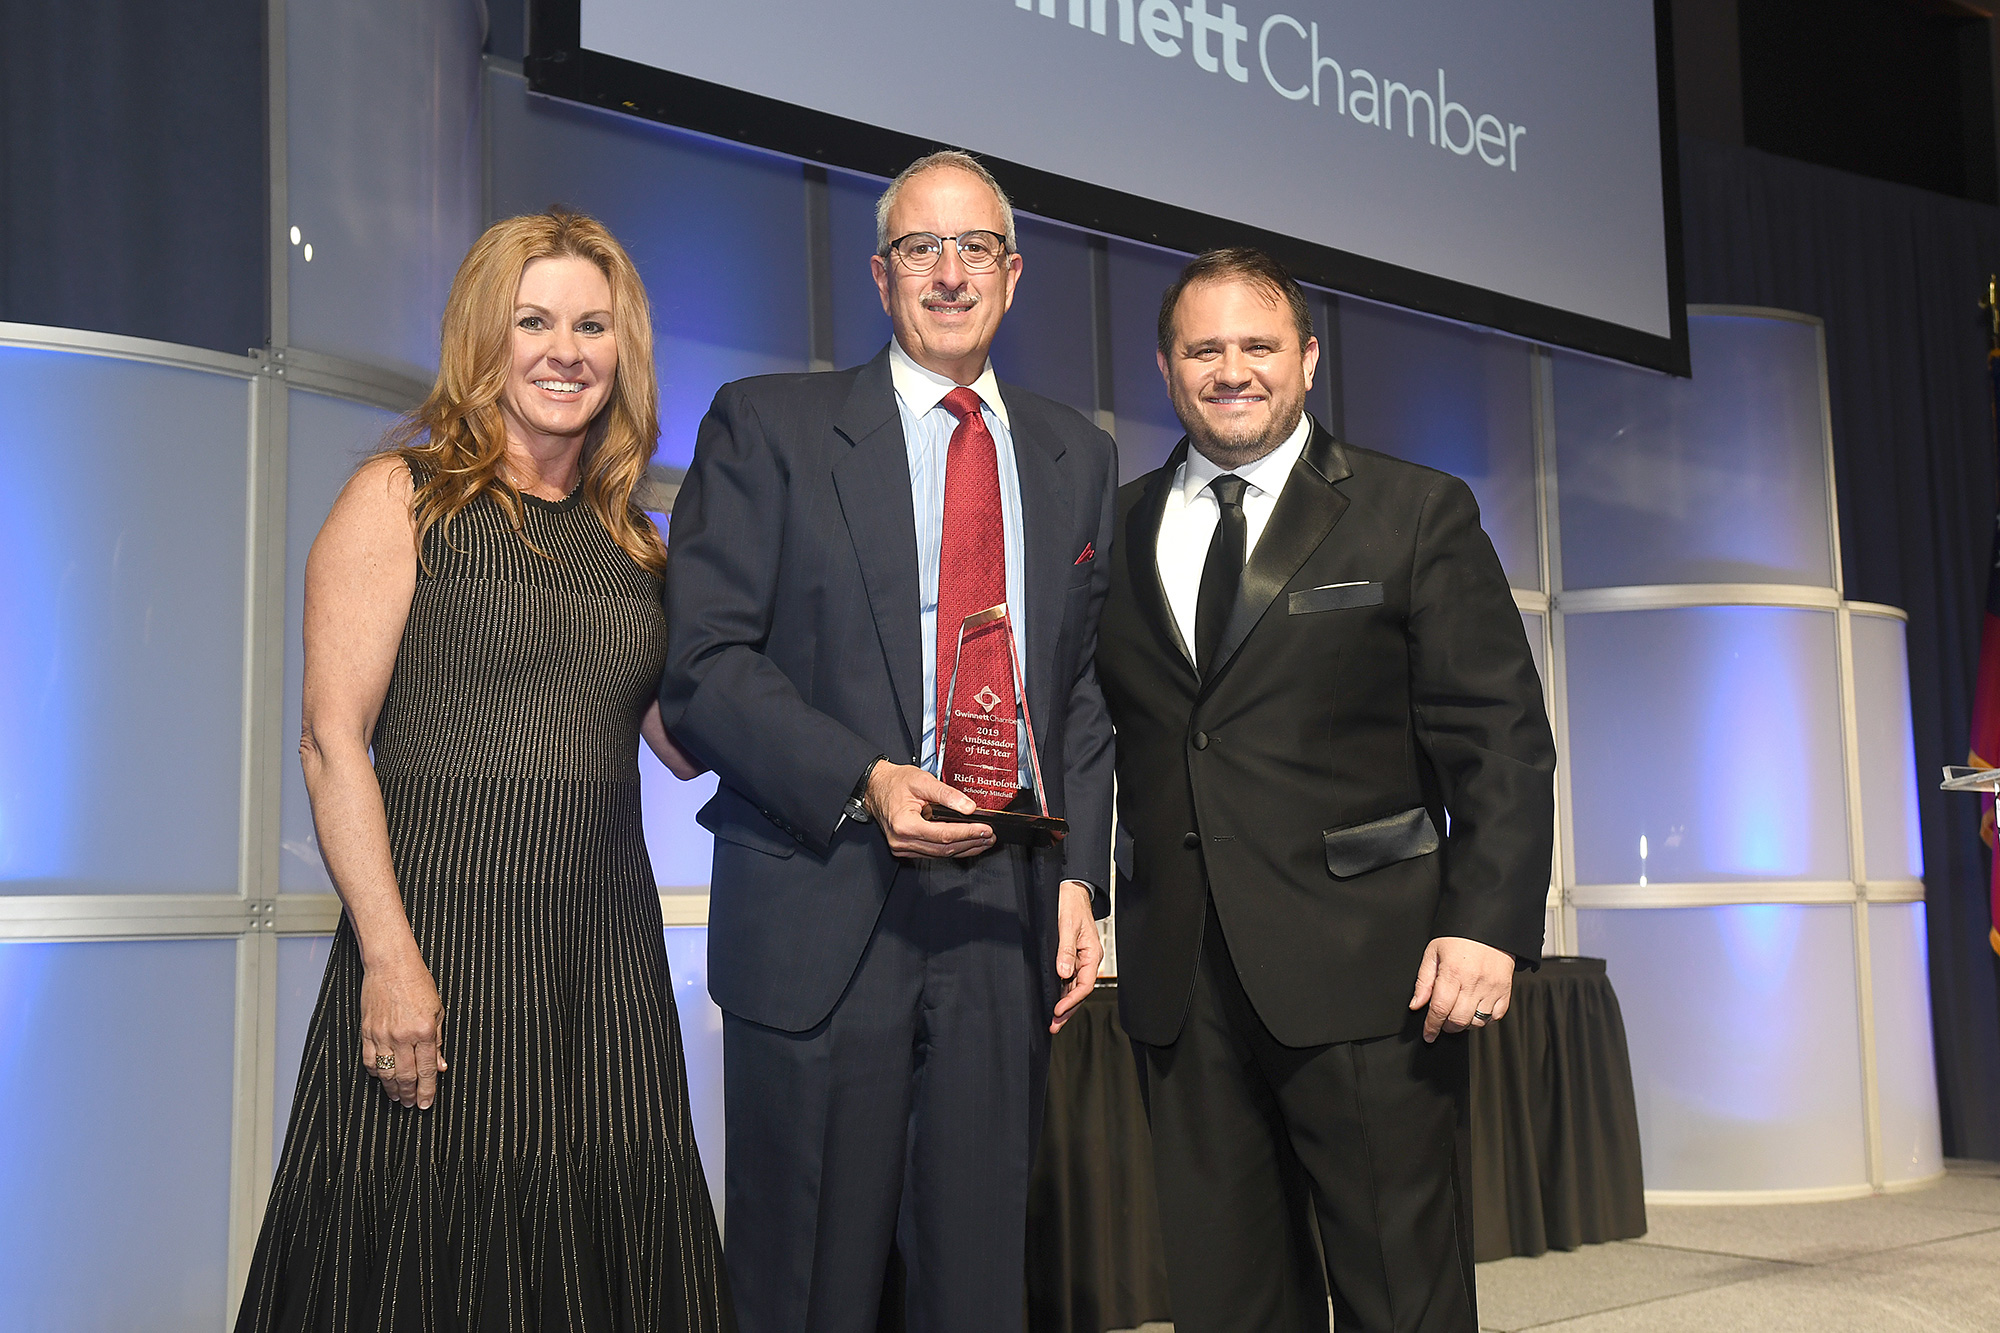 Ambassador of the Year Award - Gwinnett Chamber of Commerce